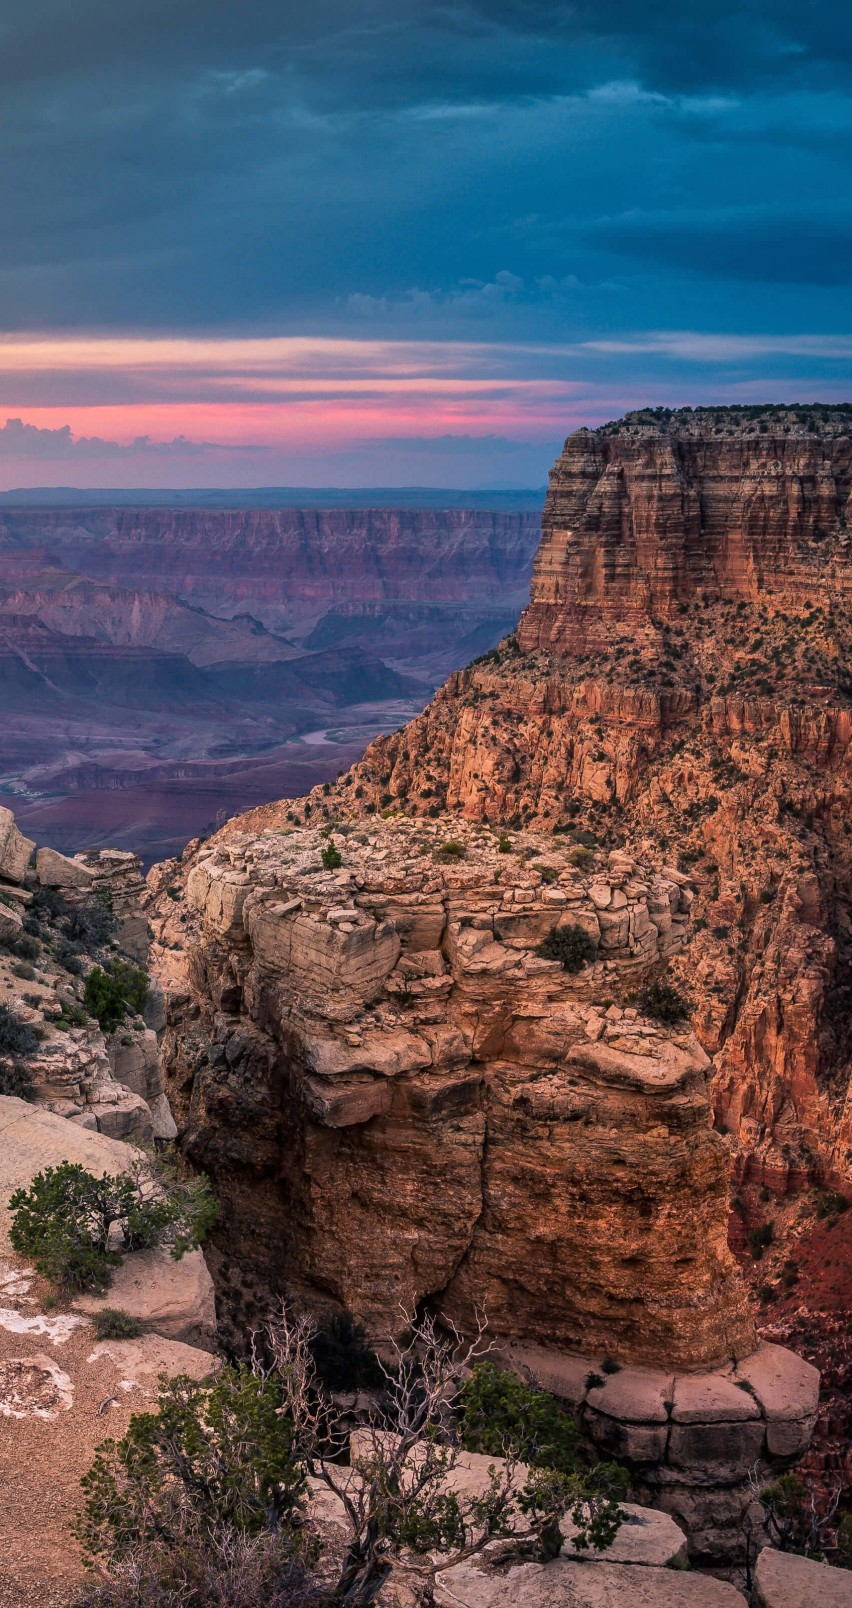 Sunset At The Grand Canyon Wallpaper for Apple iPhone 6 / 6s